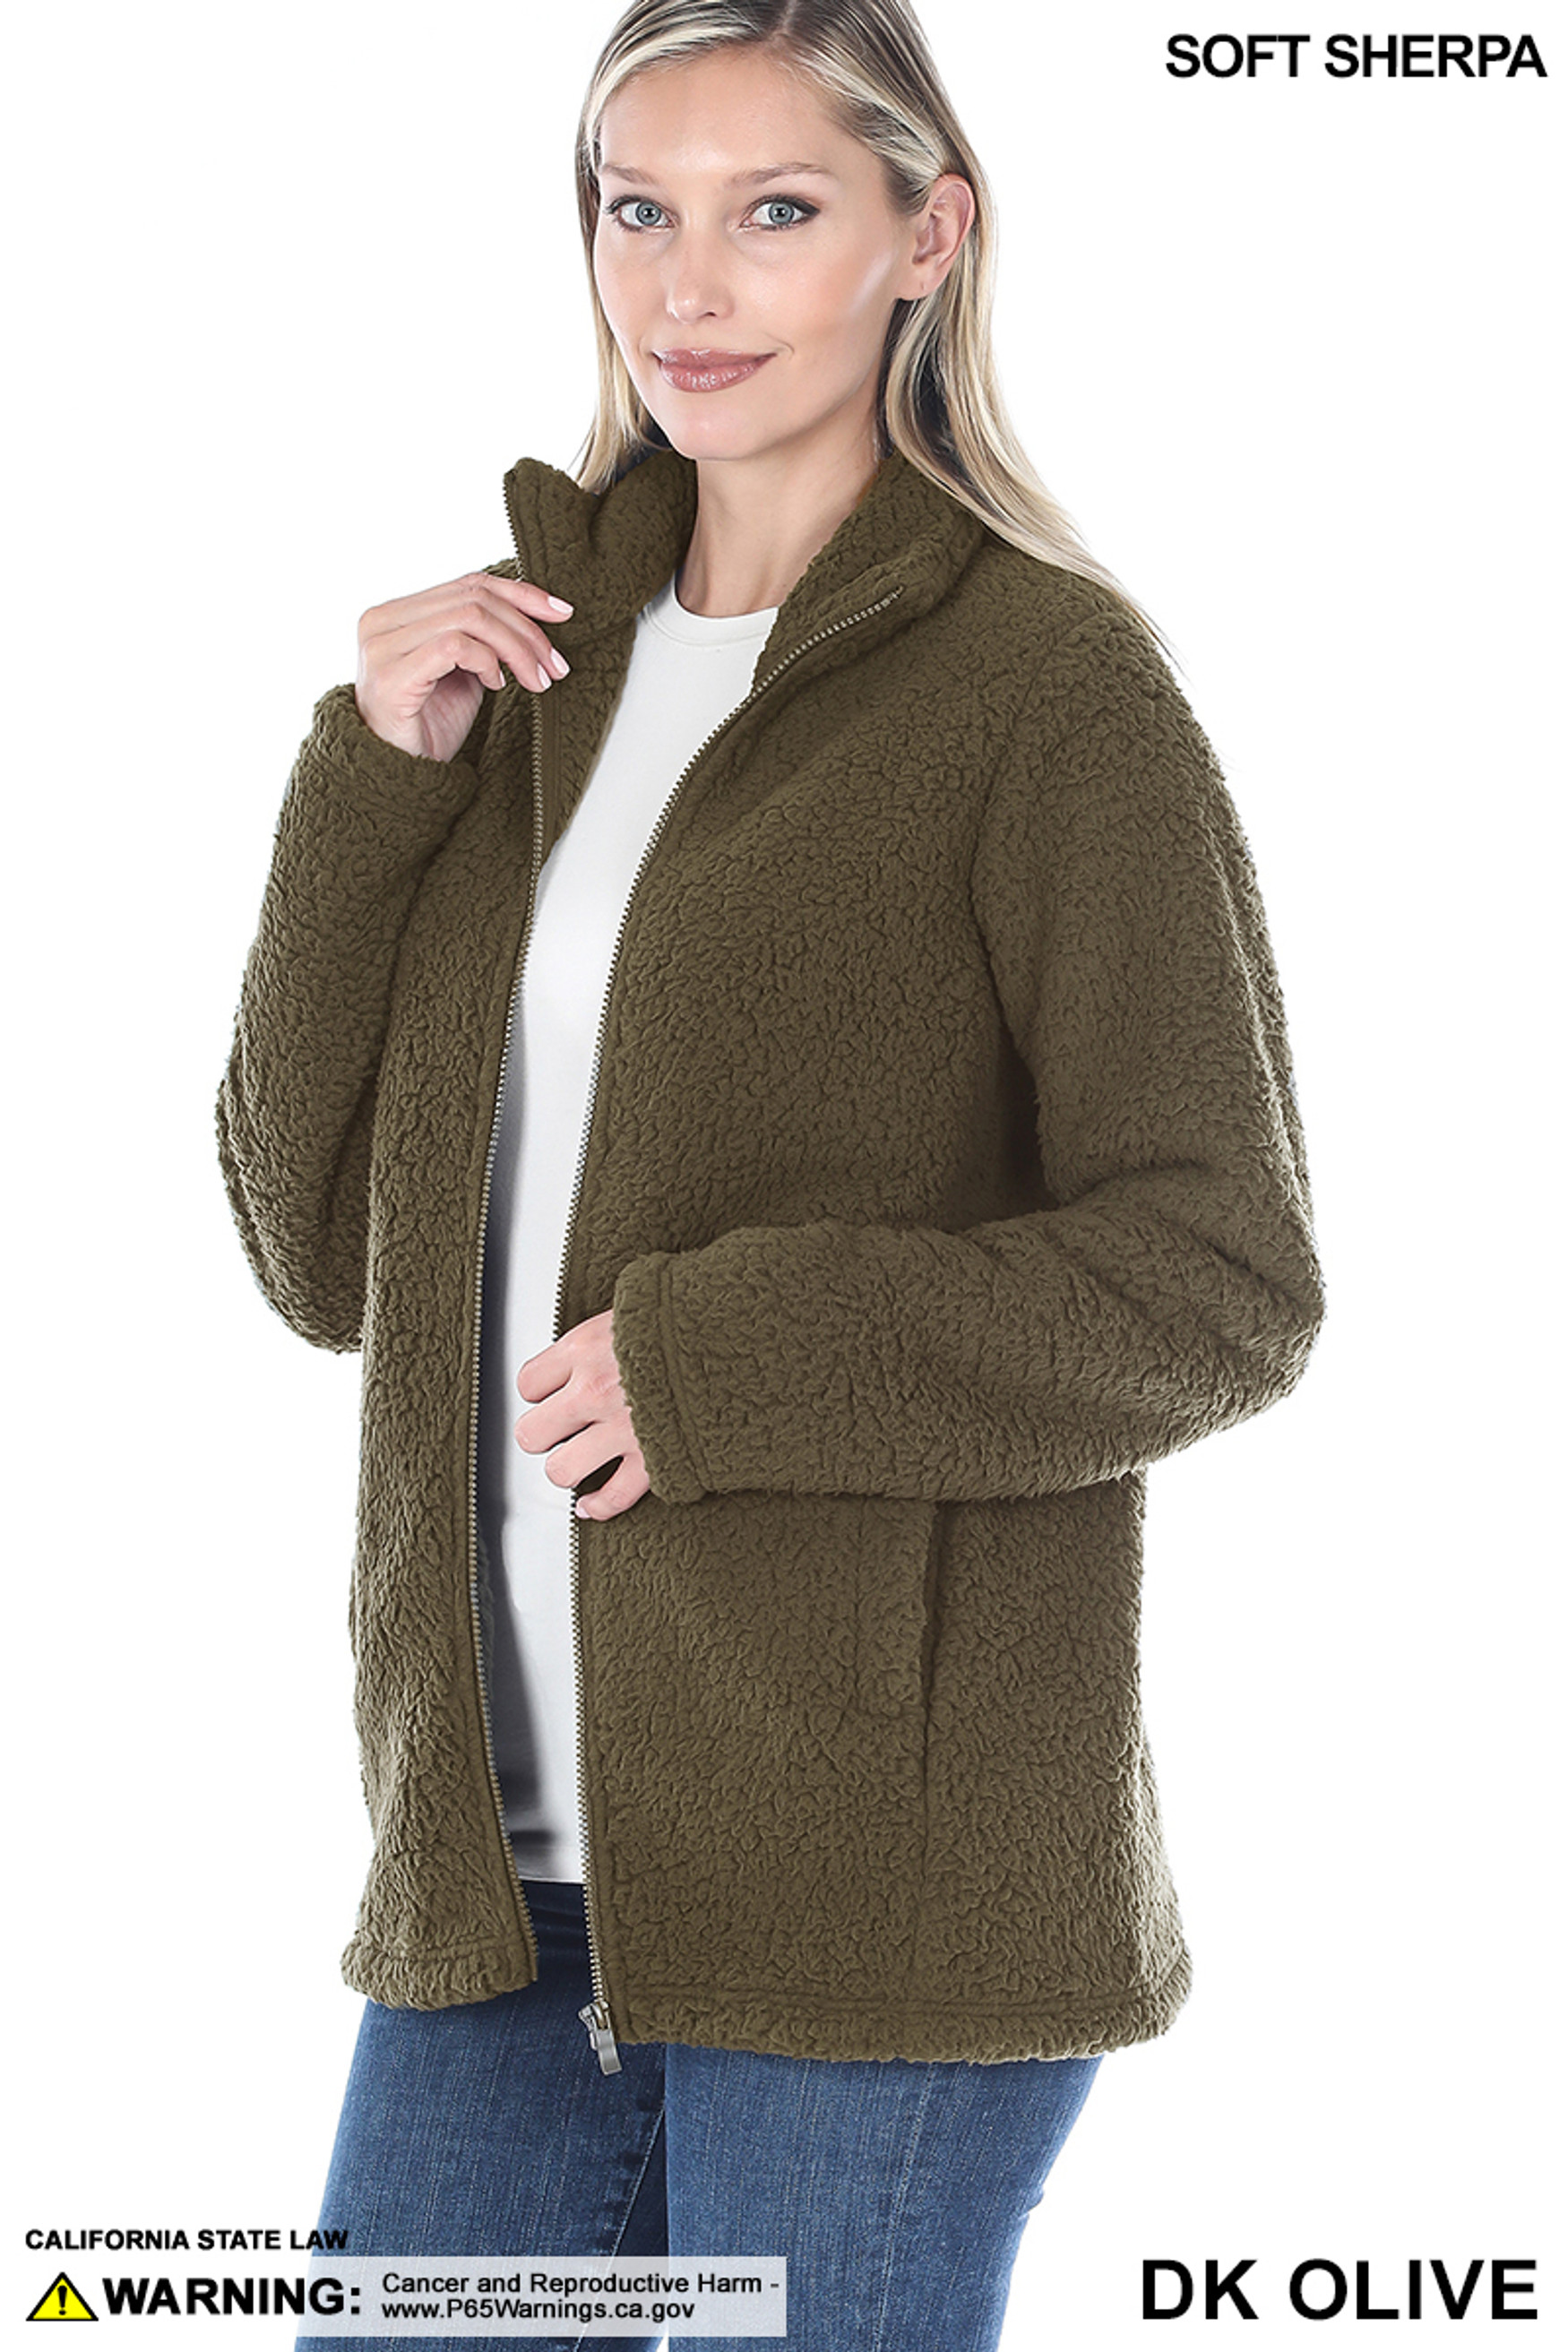 45 degree Unzipped image of Dark Olive Sherpa Zip Up Jacket with Side Pockets